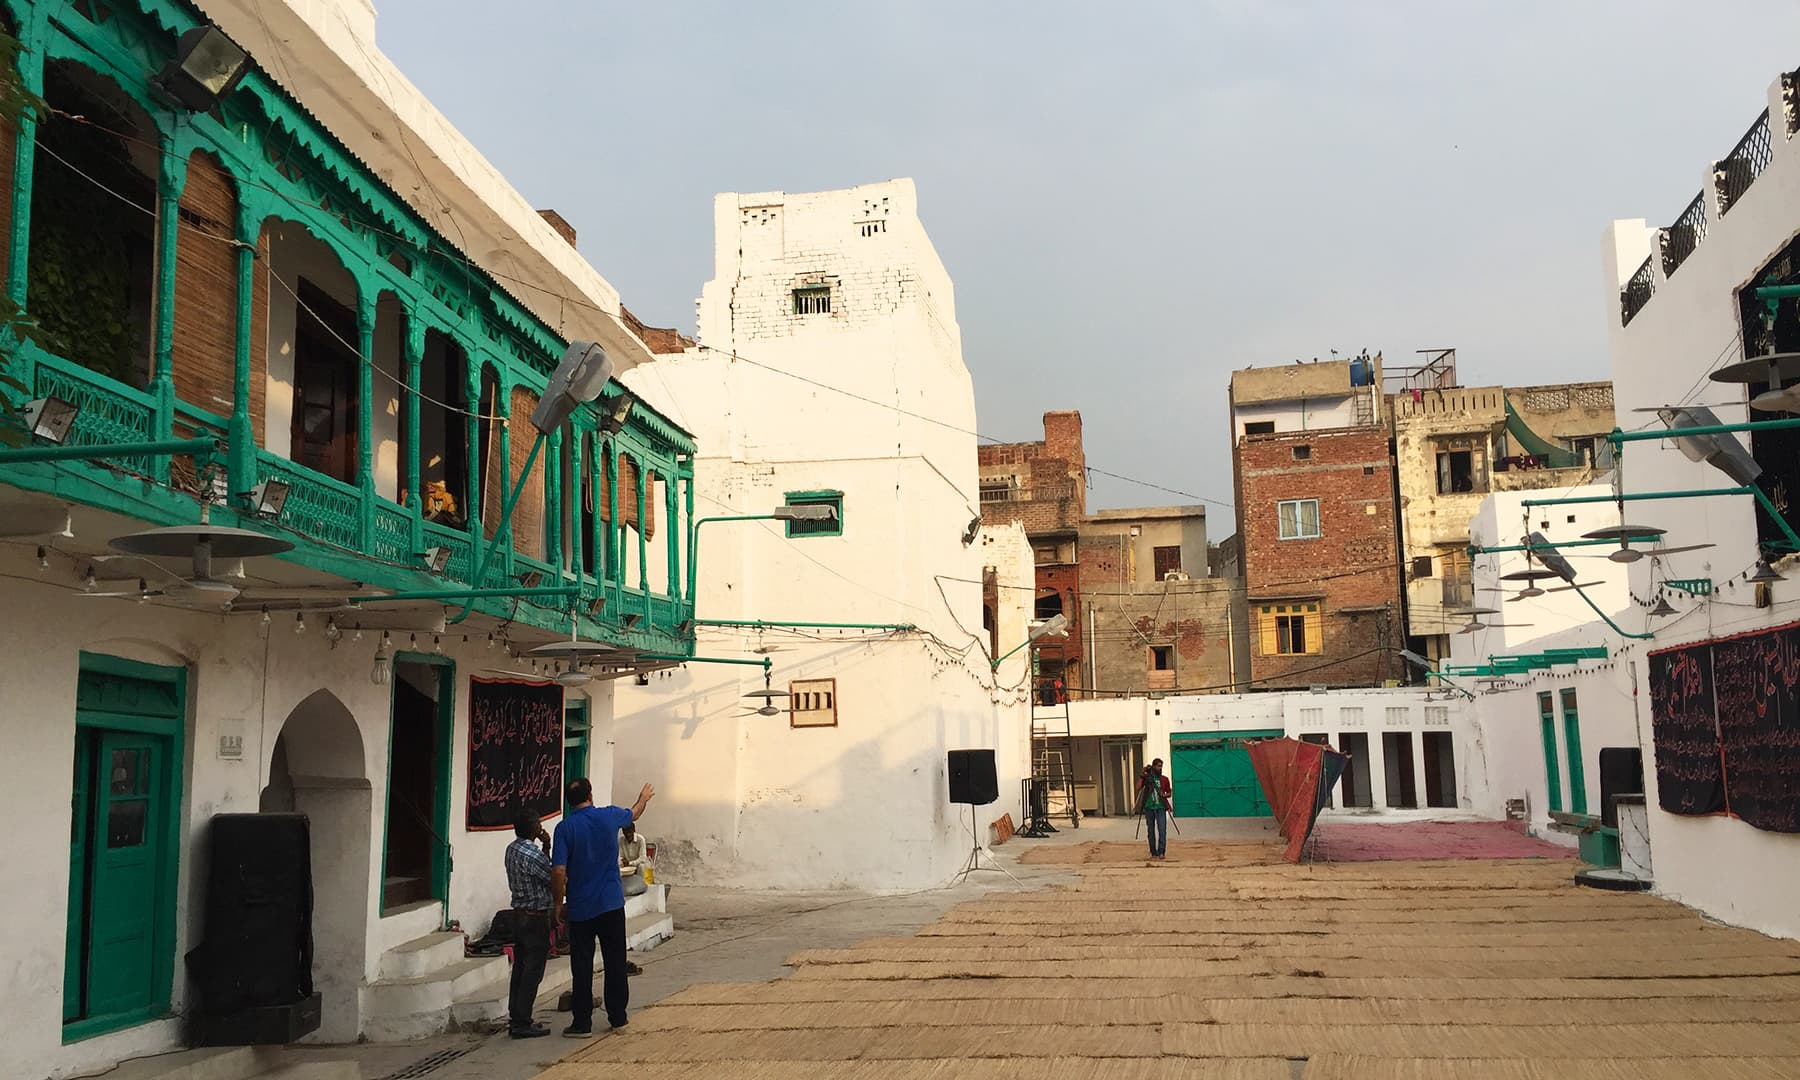 The wooden green balconies where the caretakers of Nisar 'haveli' live. —Taimur Shamil